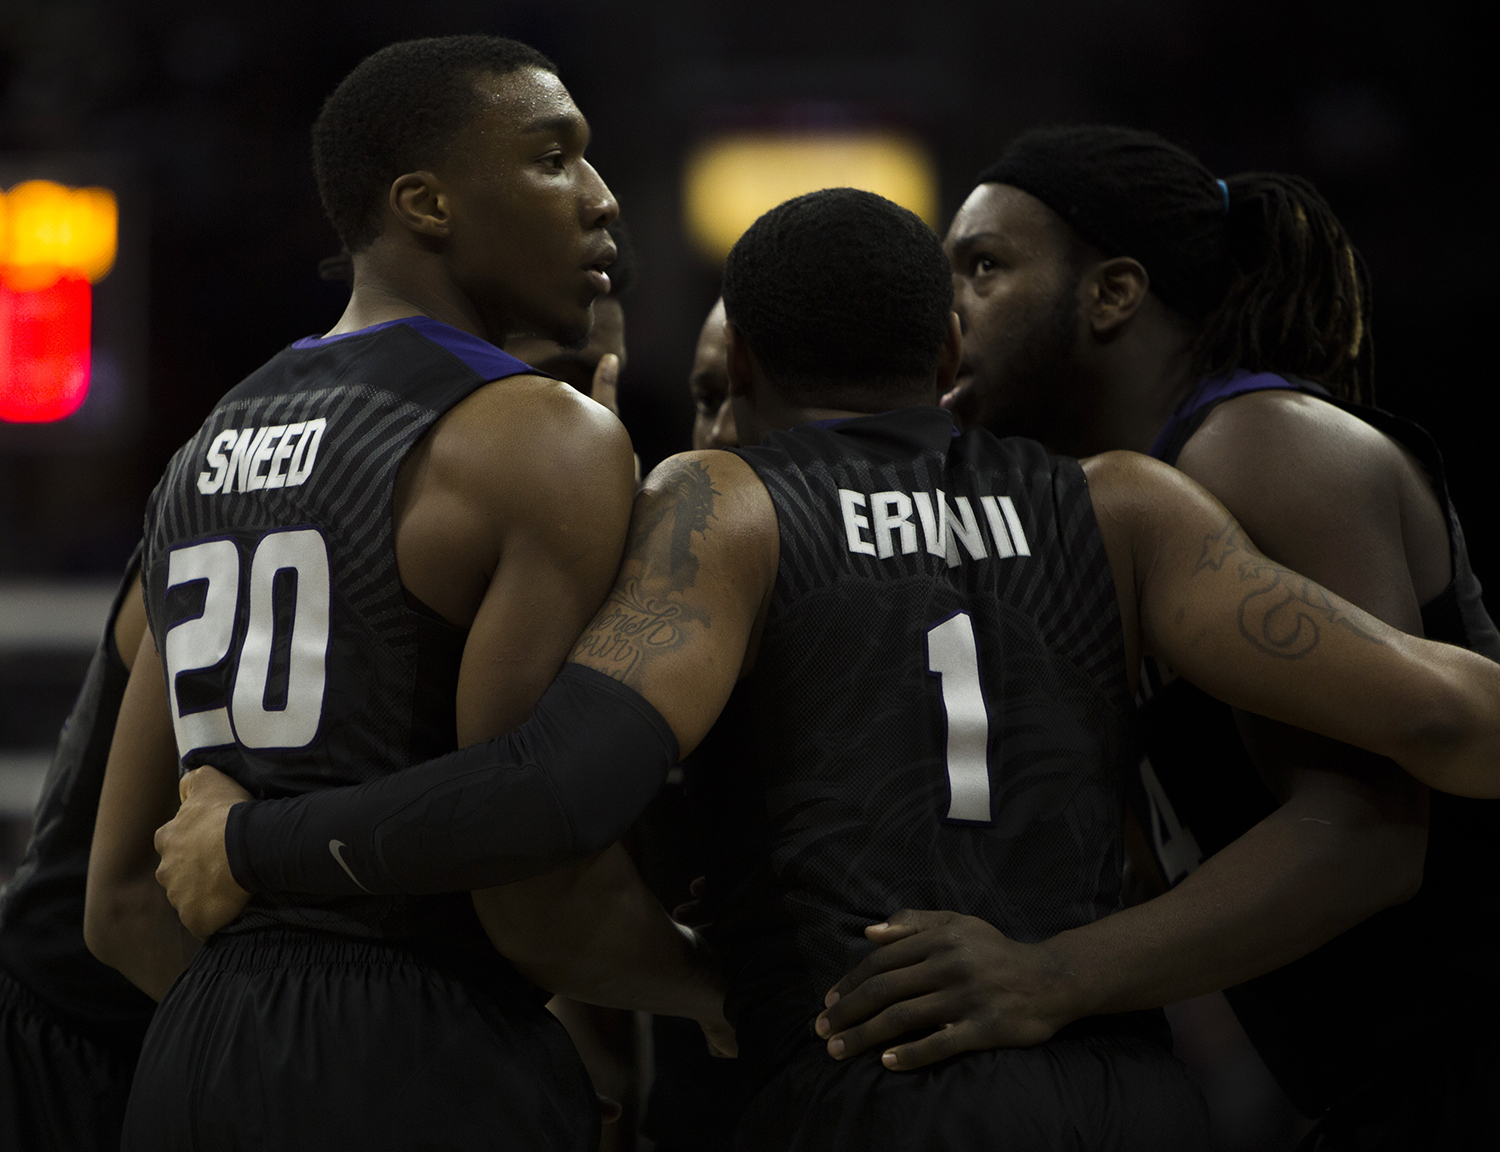 Local fans react to K-State's win over Wake Forest